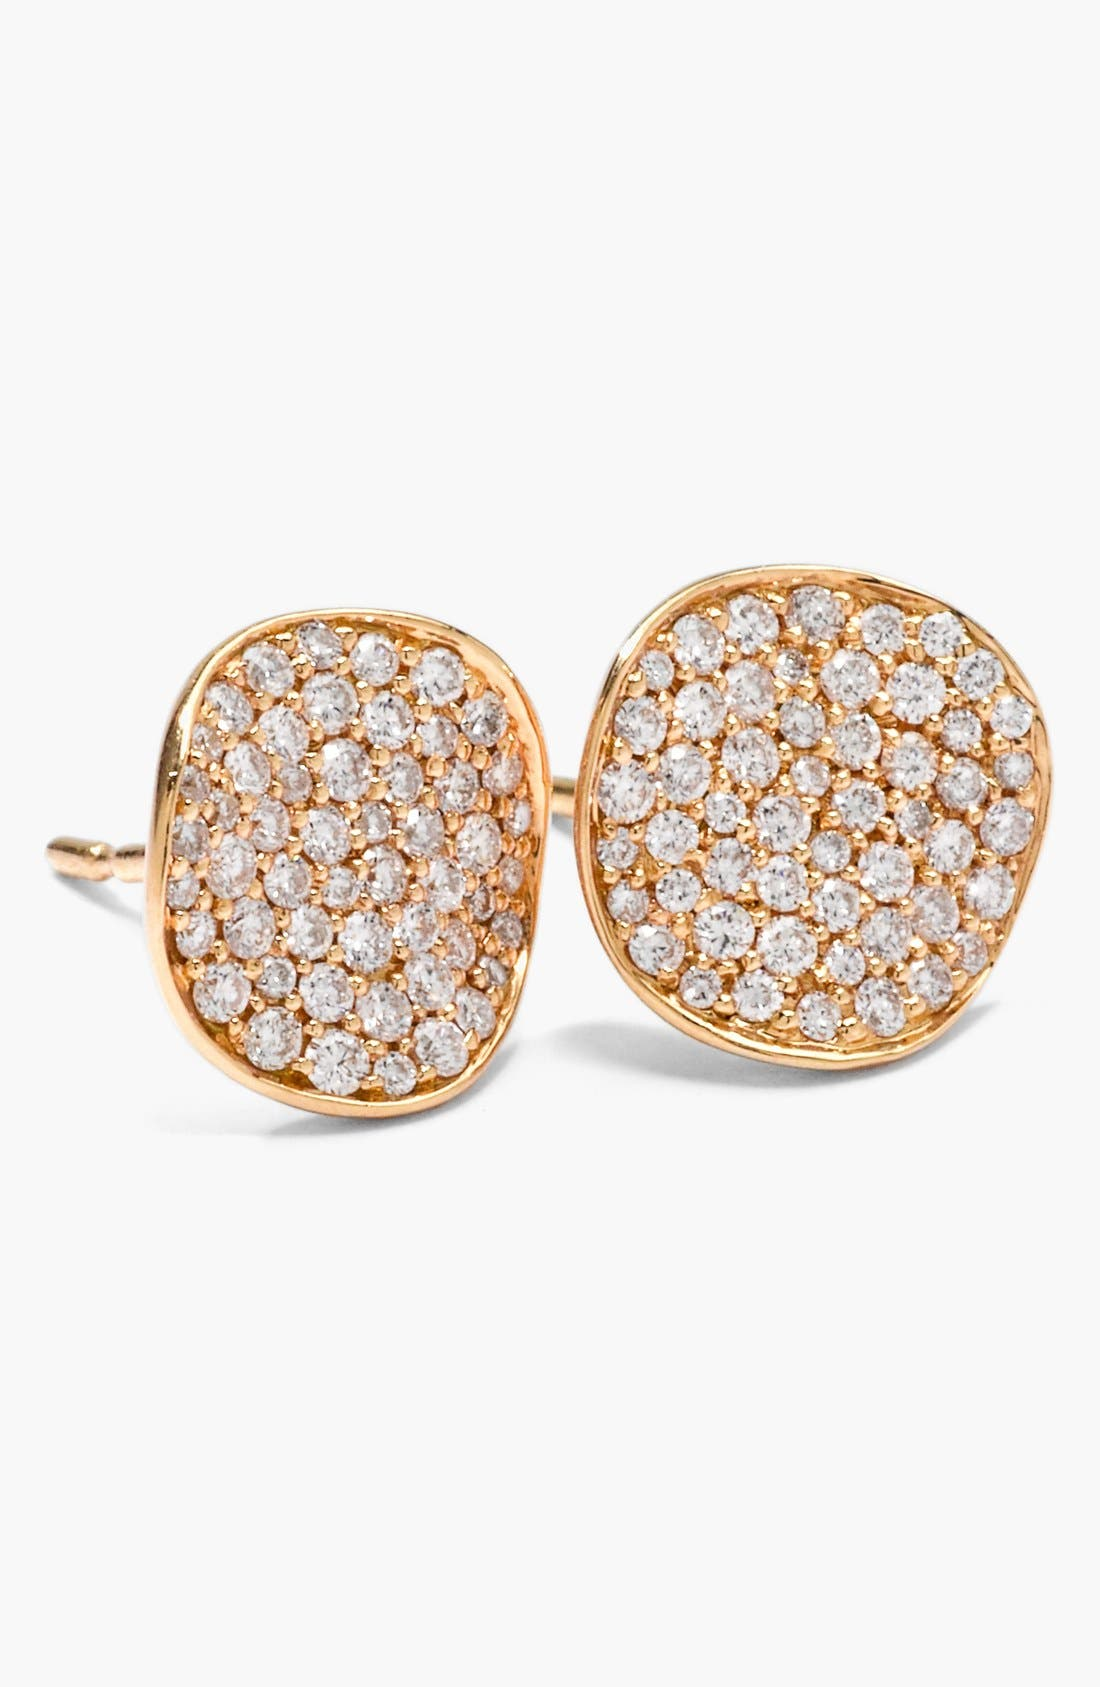 Main Image - Ippolita 'Stardust' 18k Gold & Diamond Disc Earrings